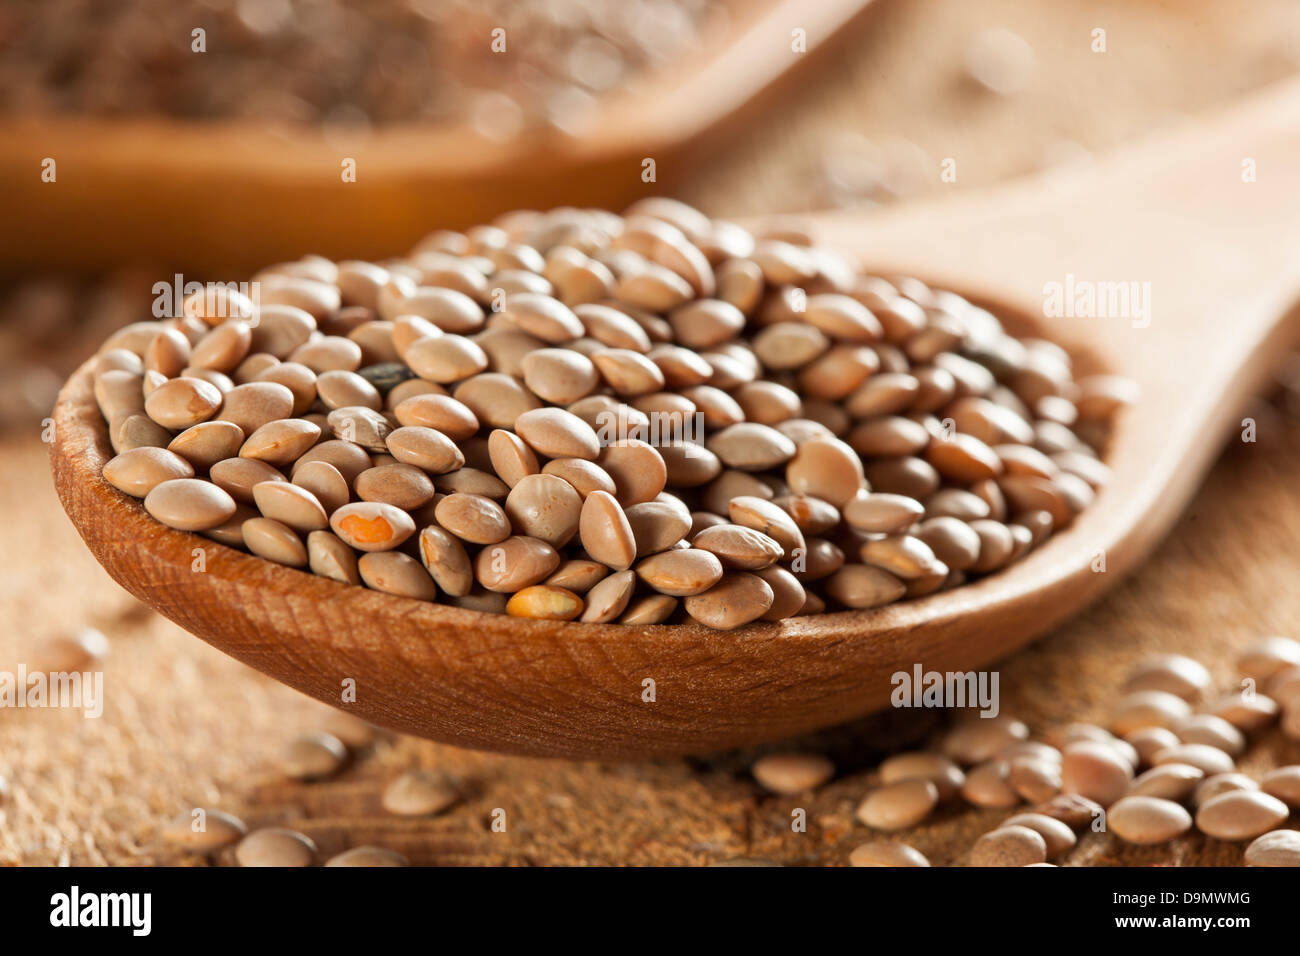 Dry Organic Brown Lentils against a background - Stock Image